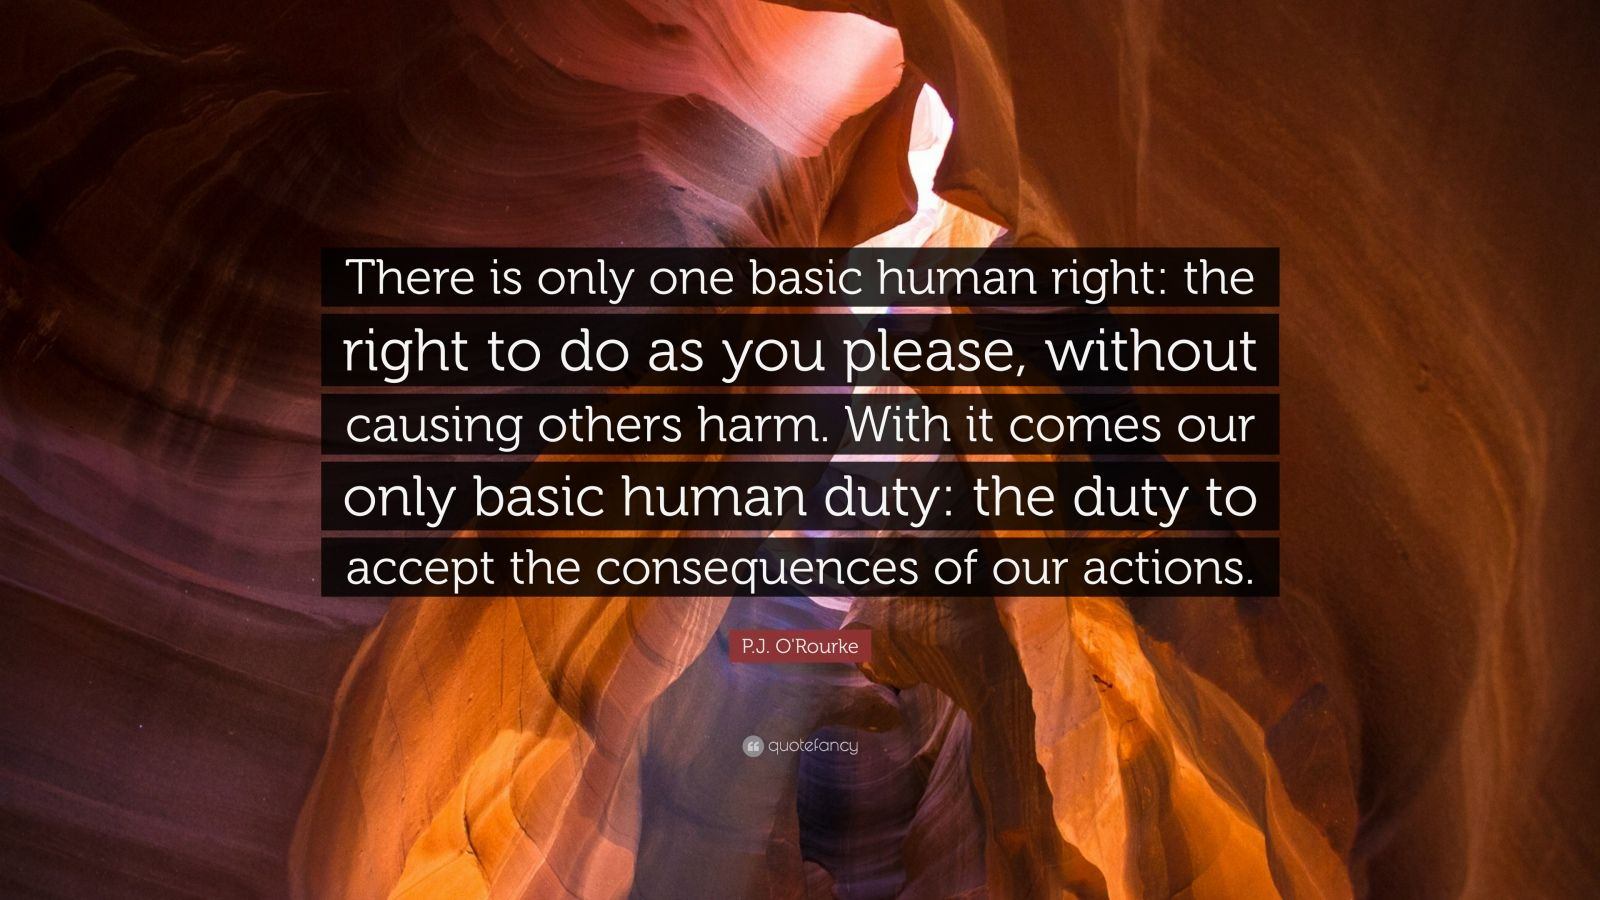 """P.J. O'Rourke Quote: """"There is only one basic human right: the right to do as you please, without causing others harm. With it comes our only basic human duty: the duty to accept the consequences of our actions."""""""